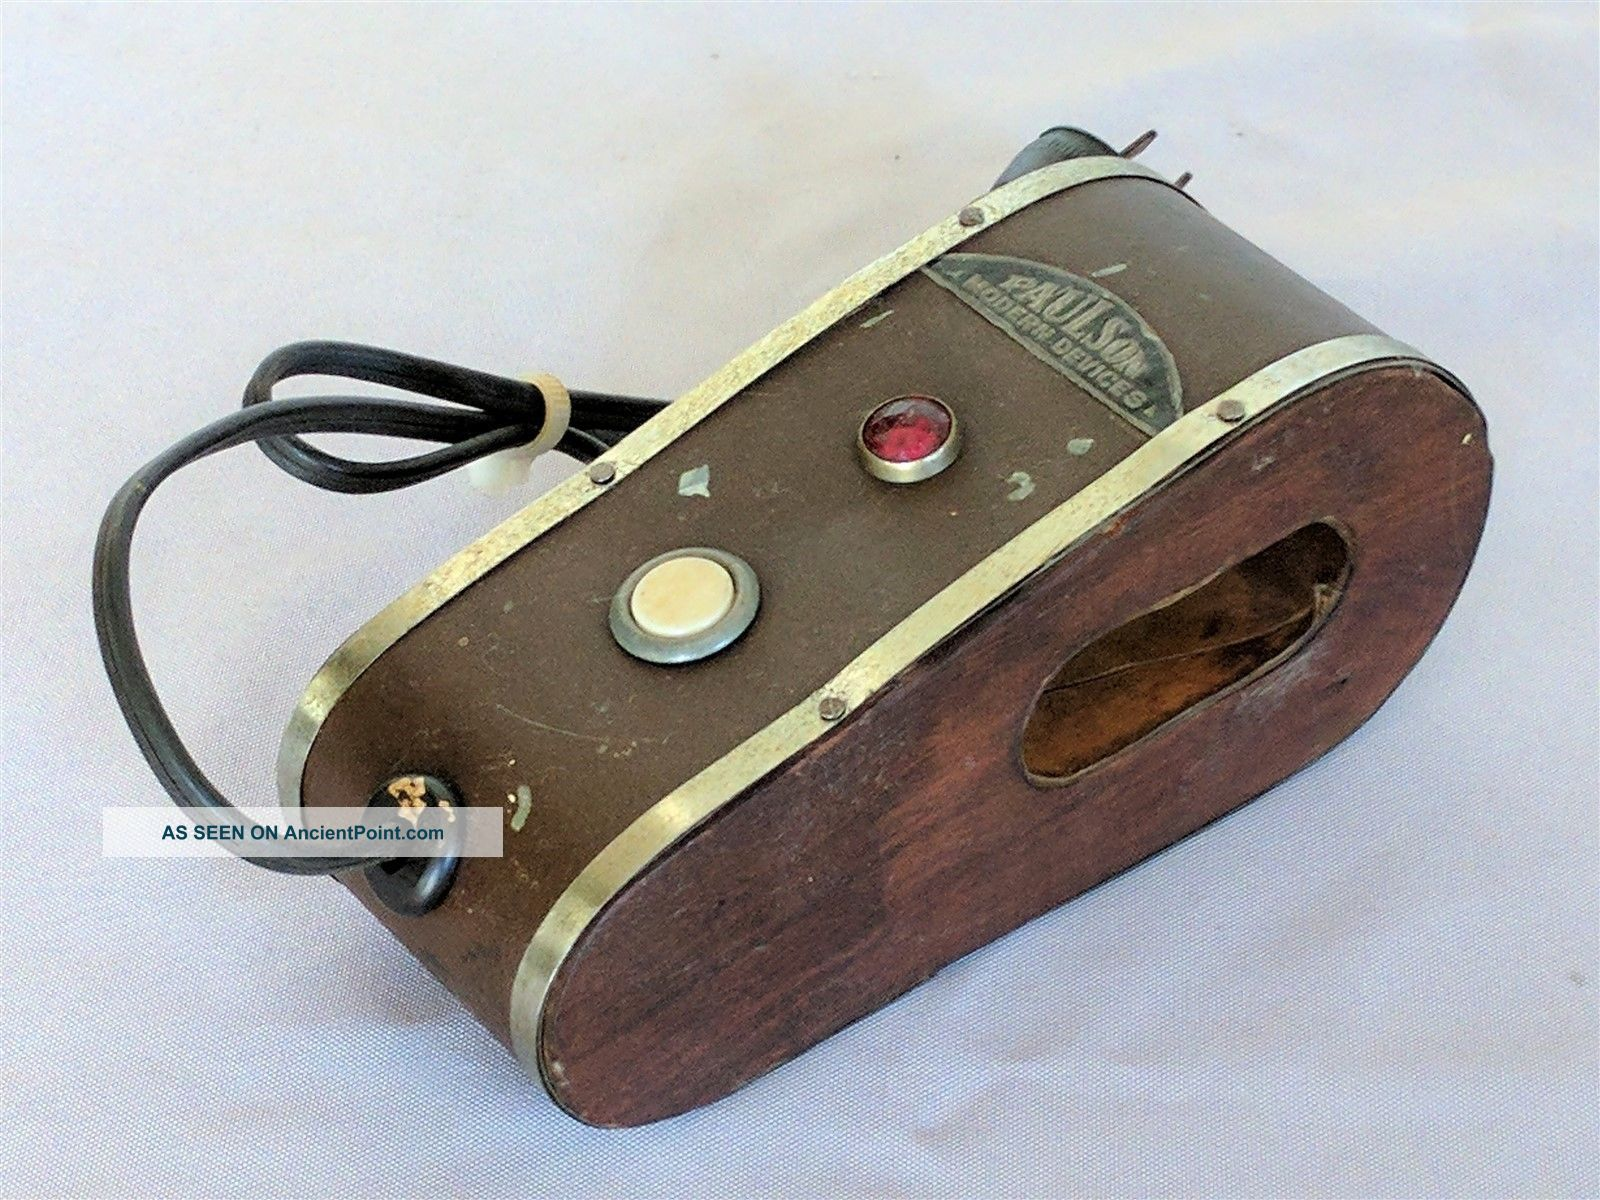 Antique Watch Demagnetizer By Paulson Modern Devices / Early 20th Century Other Antique Science Equip photo